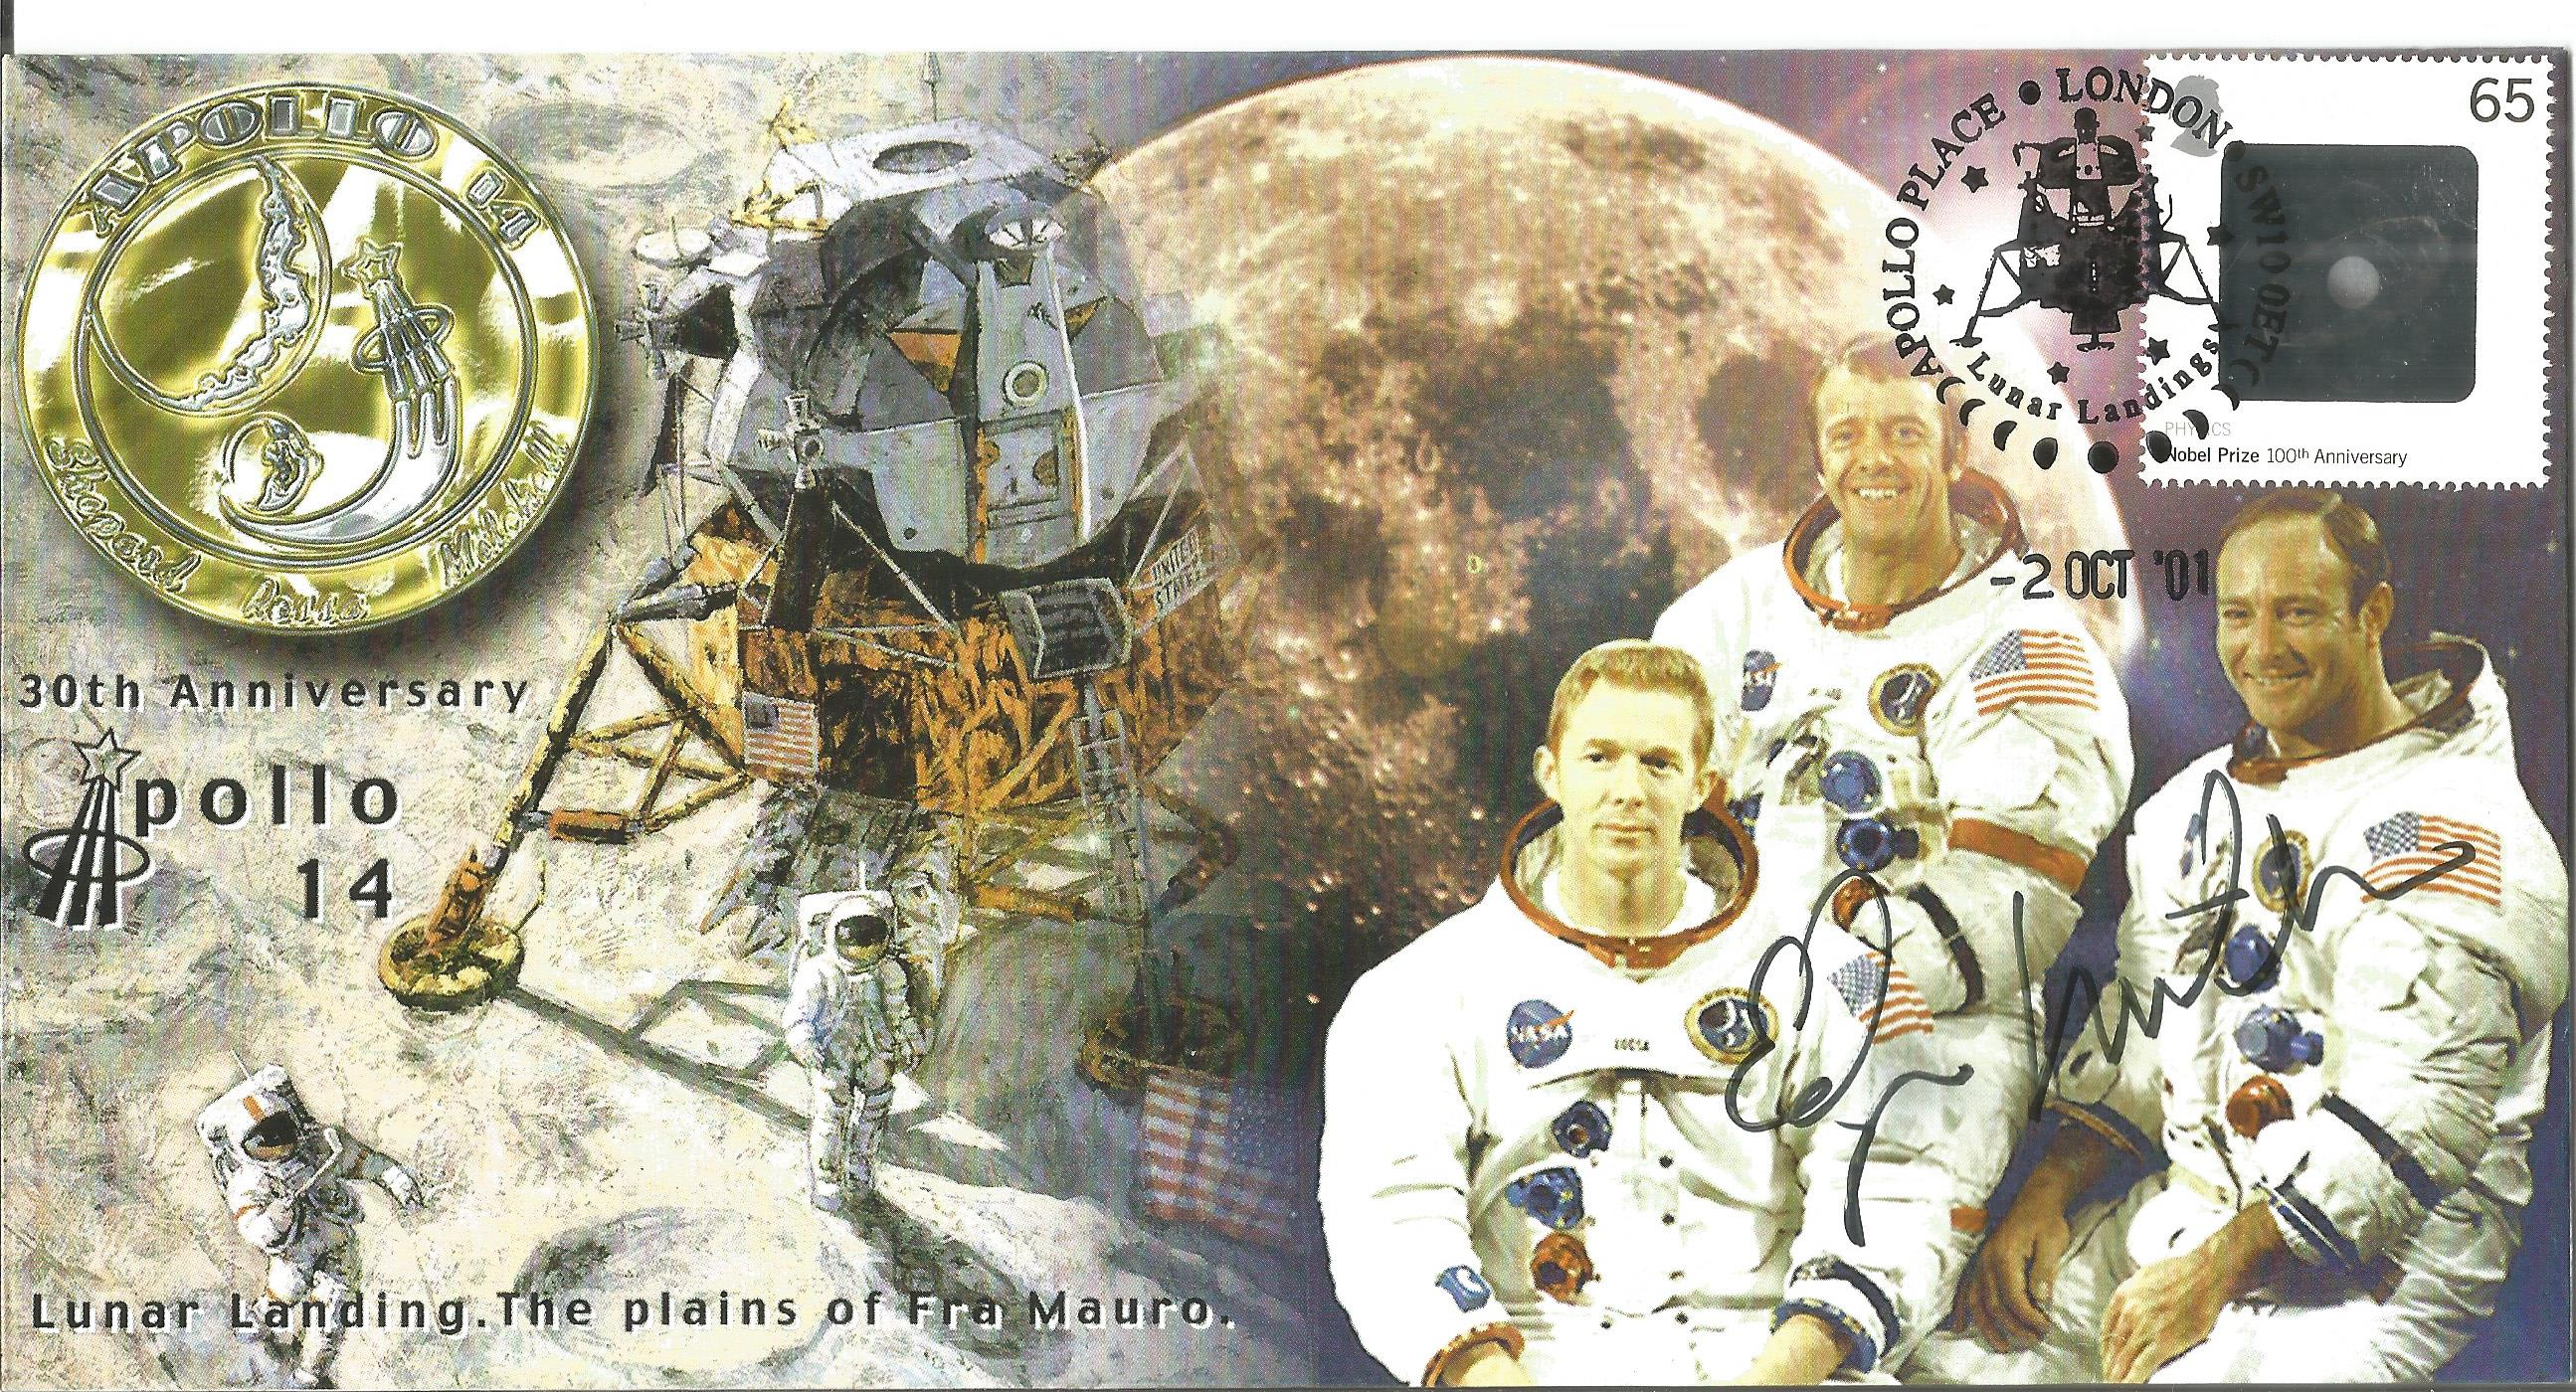 Space Moonwalker Dr Edgar Mitchell NASA Astronaut signed 2001 Apollo 14 Limited Edition cover. As